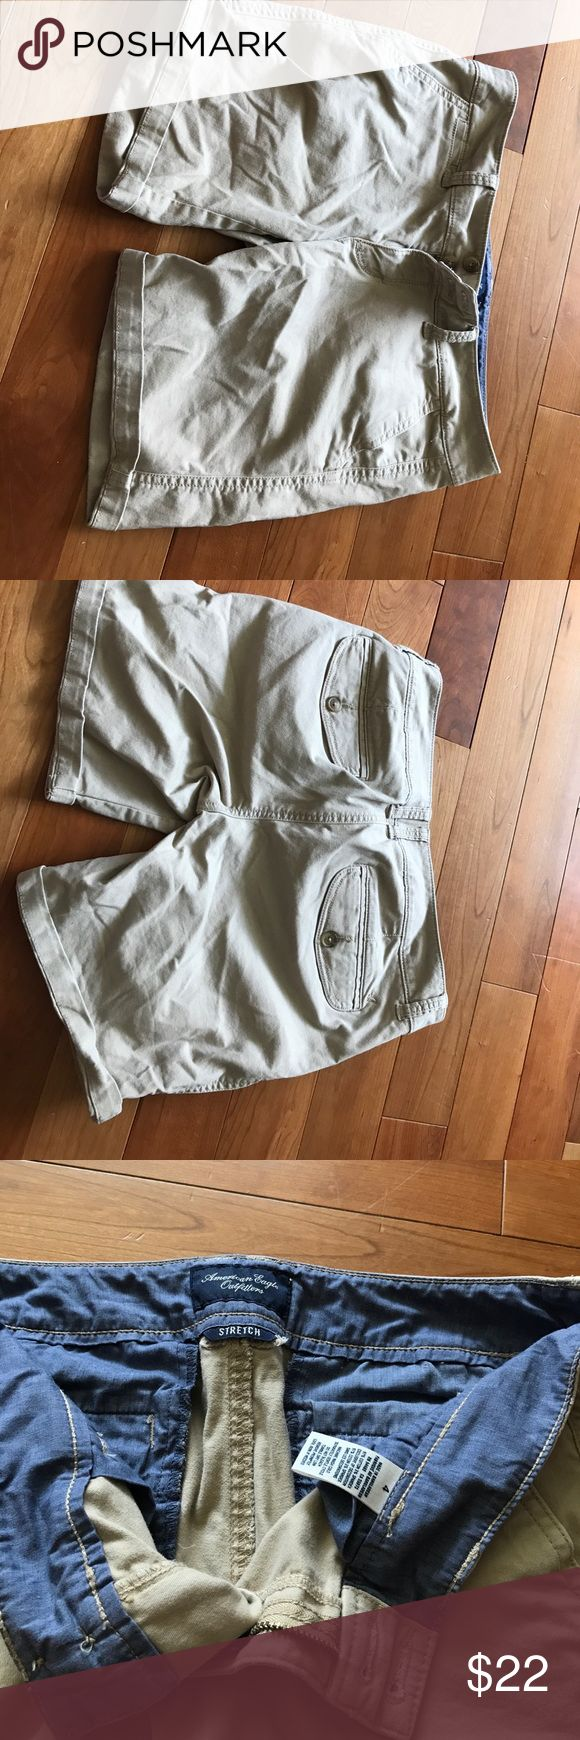 American Eagle Outfitters Stretch Khaki Shorts EUC Khaki shorts perfect for summer teaching job. Sits at waist and fits nicely down thighs for a conservative crisp look. Barely worn. Can only be bundled to save shipping. American Eagle Outfitters Shorts